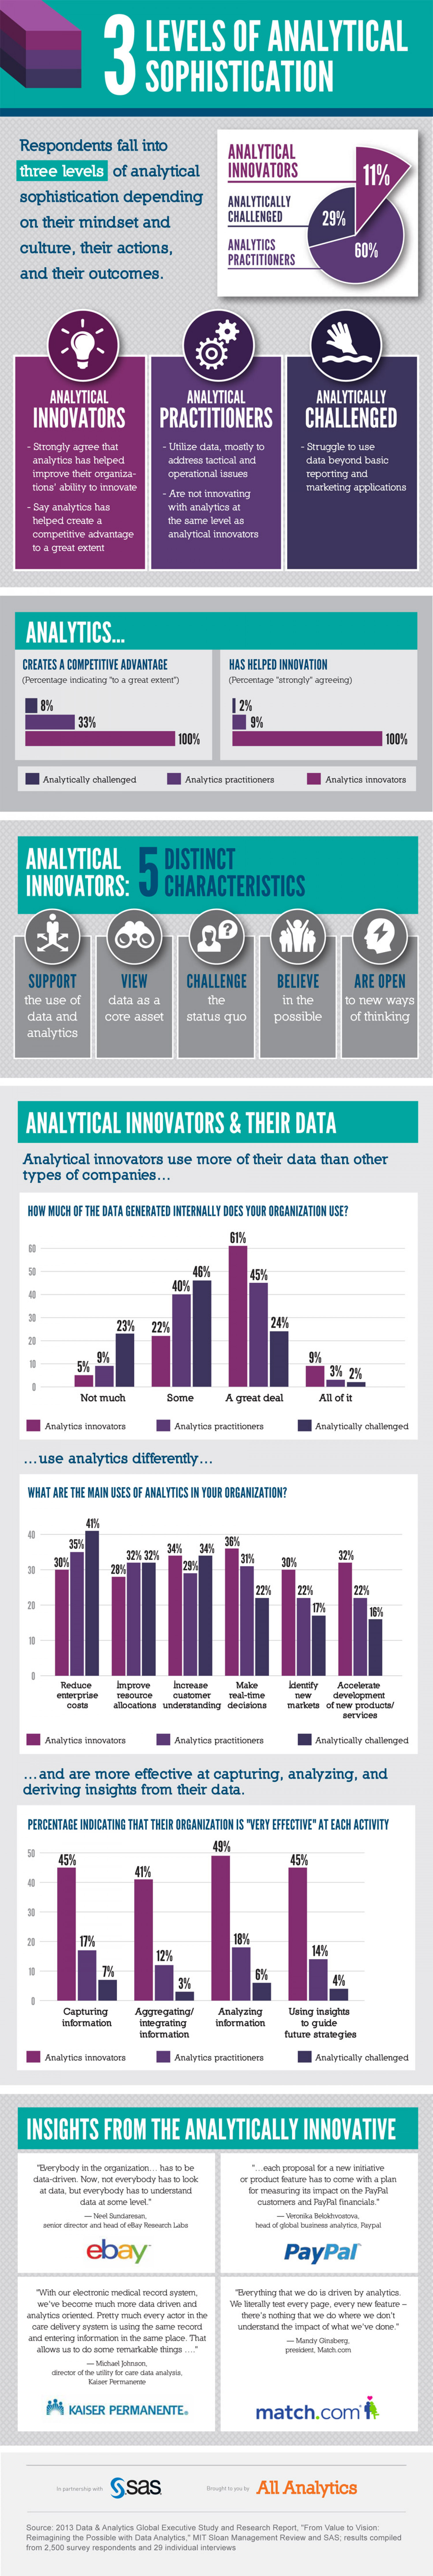 All Analytics: 3 Levels of Analytical Sophistication Infographic